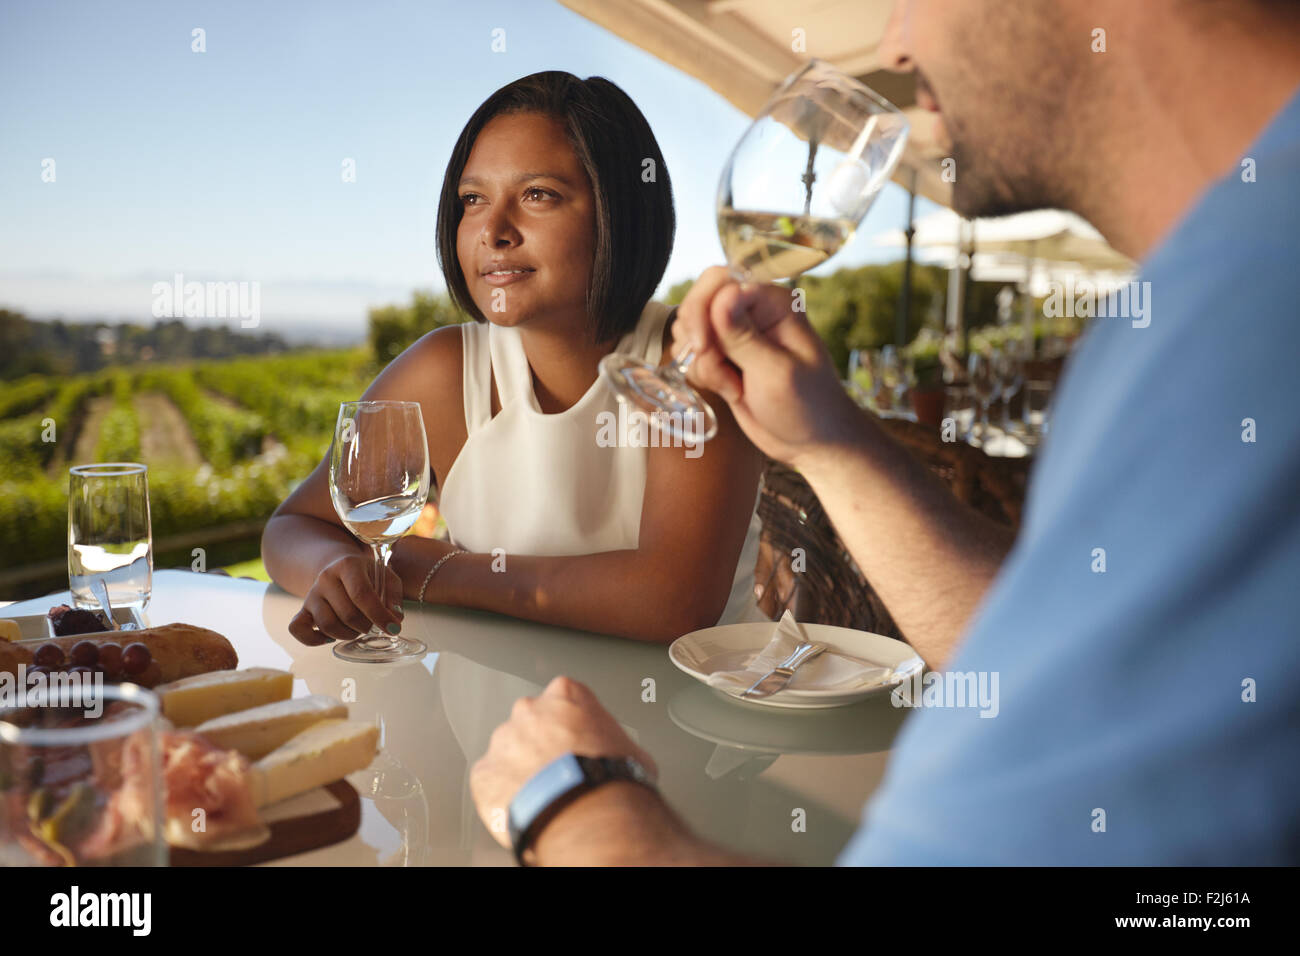 Young woman with a man drinking wine. Couple on vacation in outdoor wine bar restaurant by a vineyard. - Stock Image